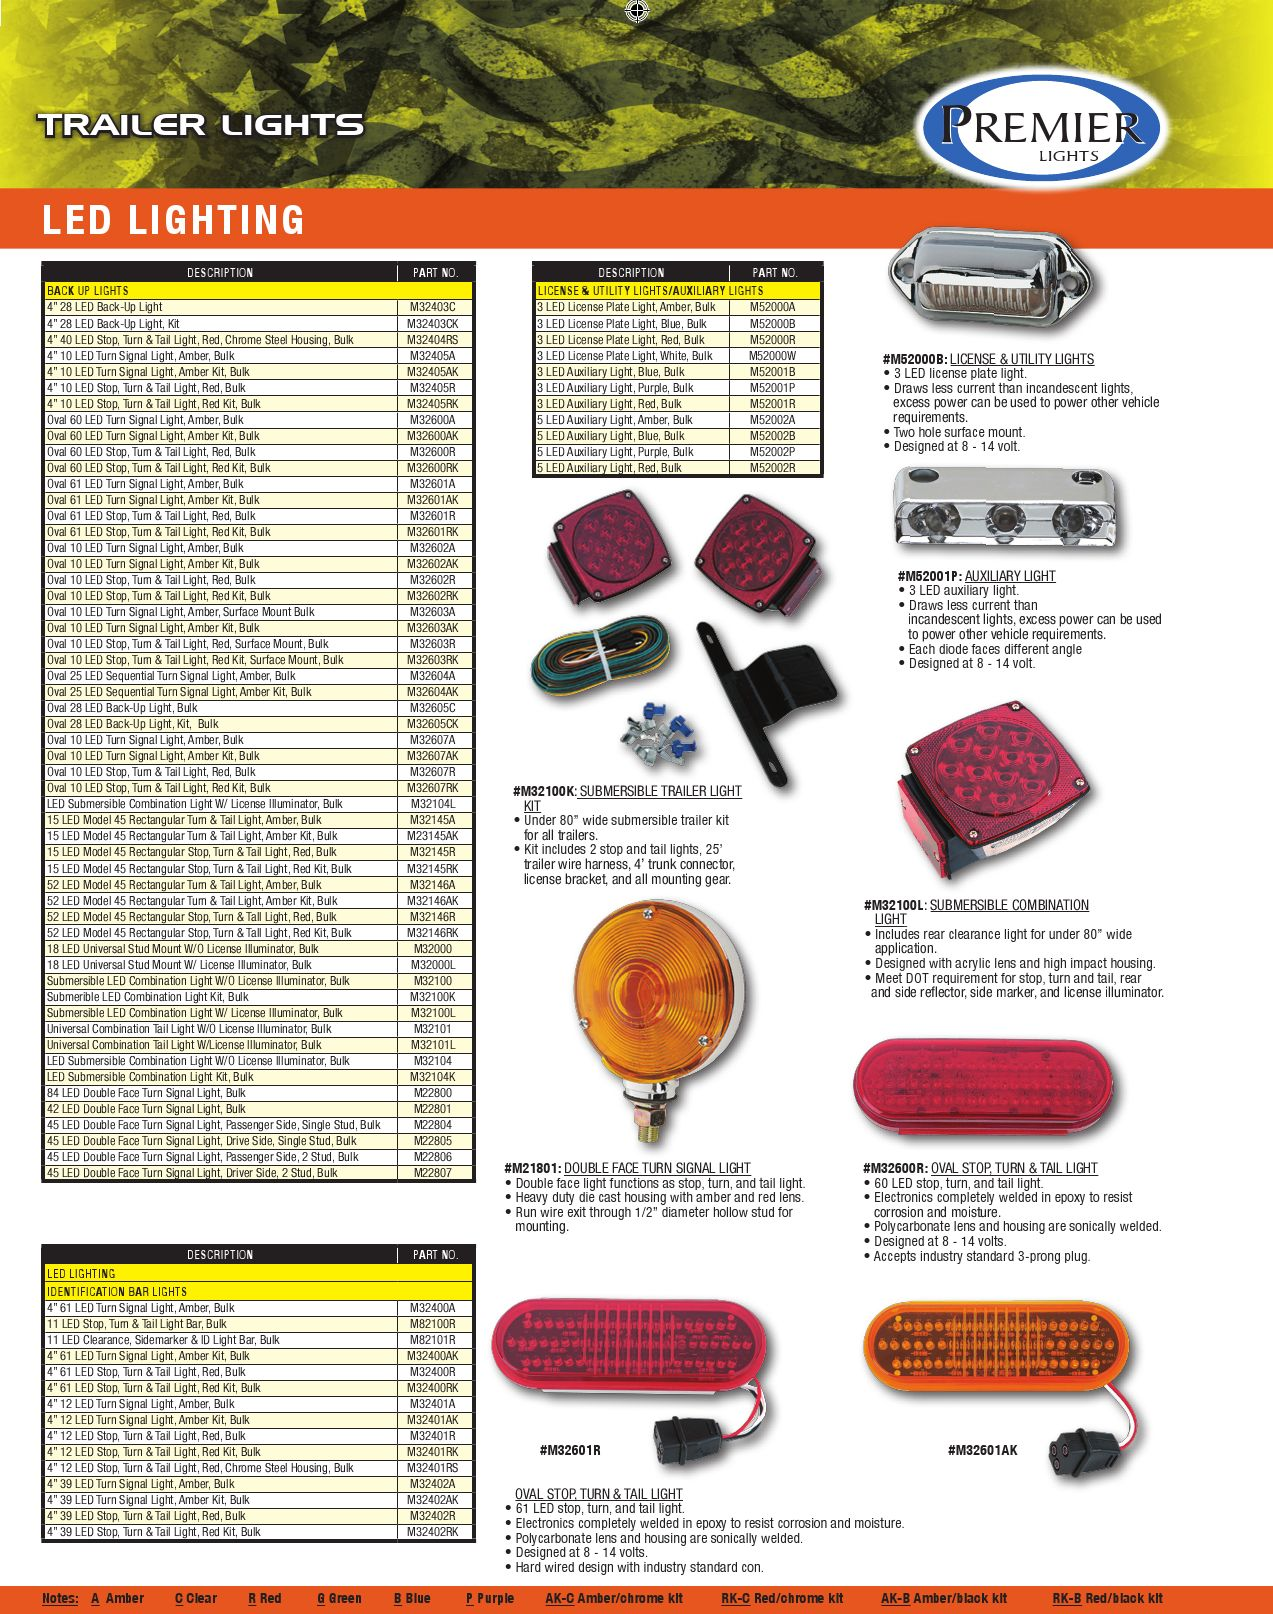 Premier Trailer Lights By Croft Supply And Distribution Issuu Light Wiring Harness